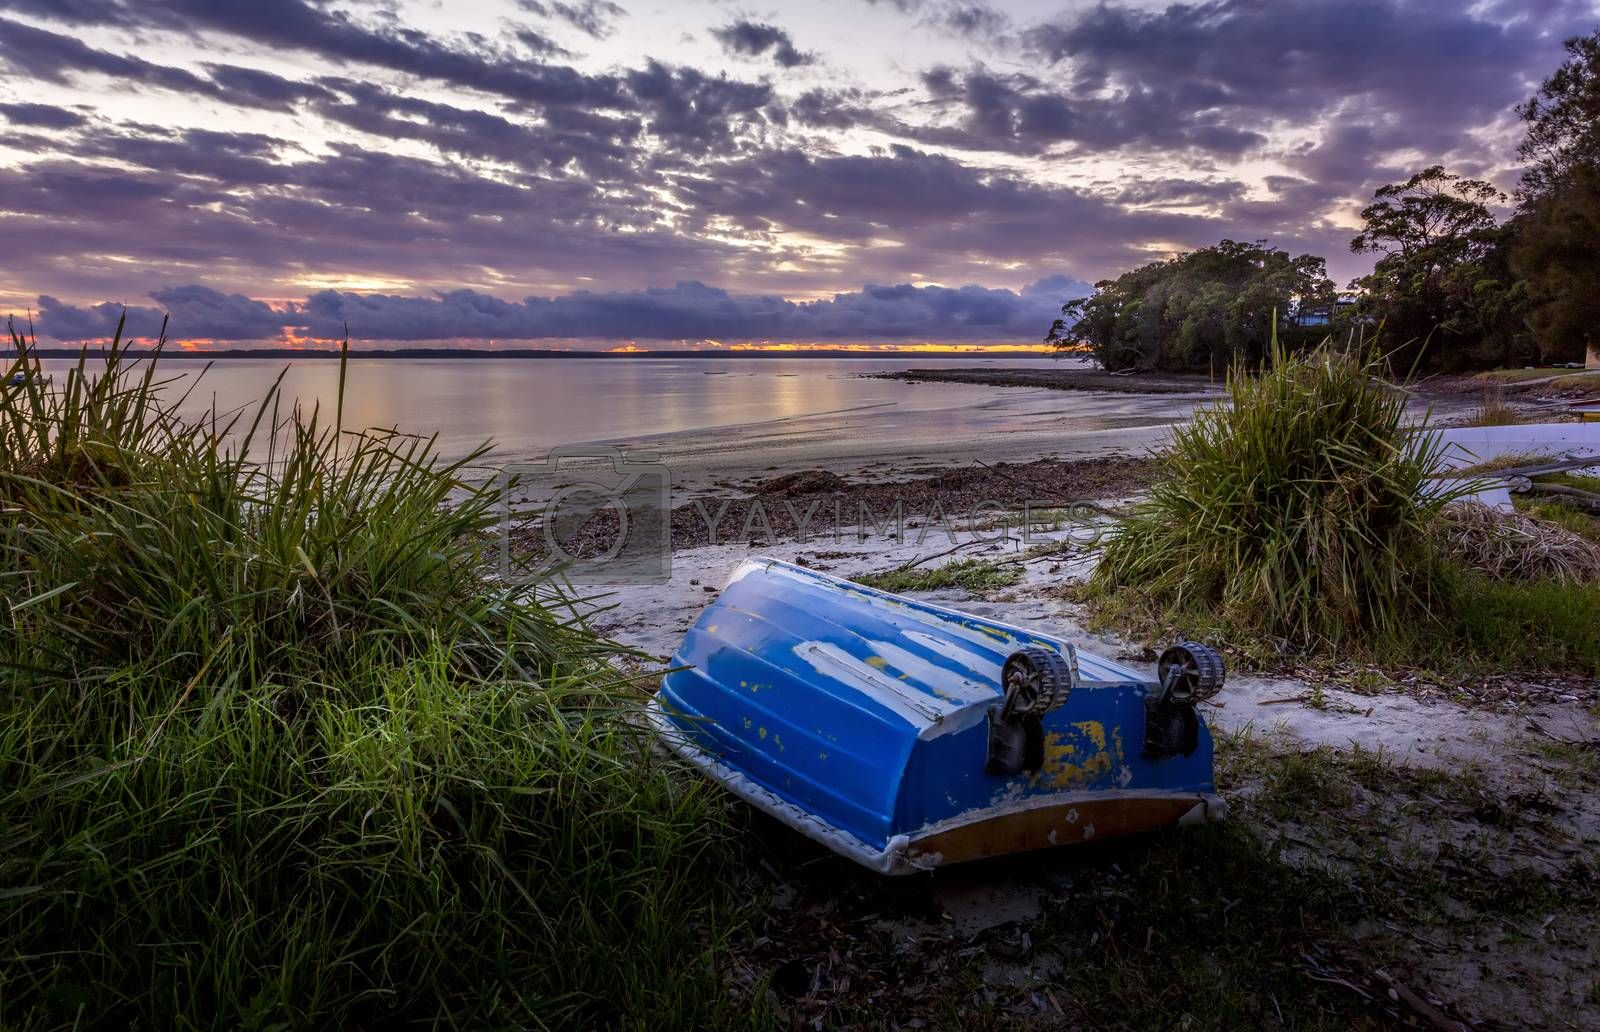 """Little blue rowboat, sometimes called """"tinnies"""" in Australia sits upturned on a beach at dawn with the sky aglow with the first colours of morning"""